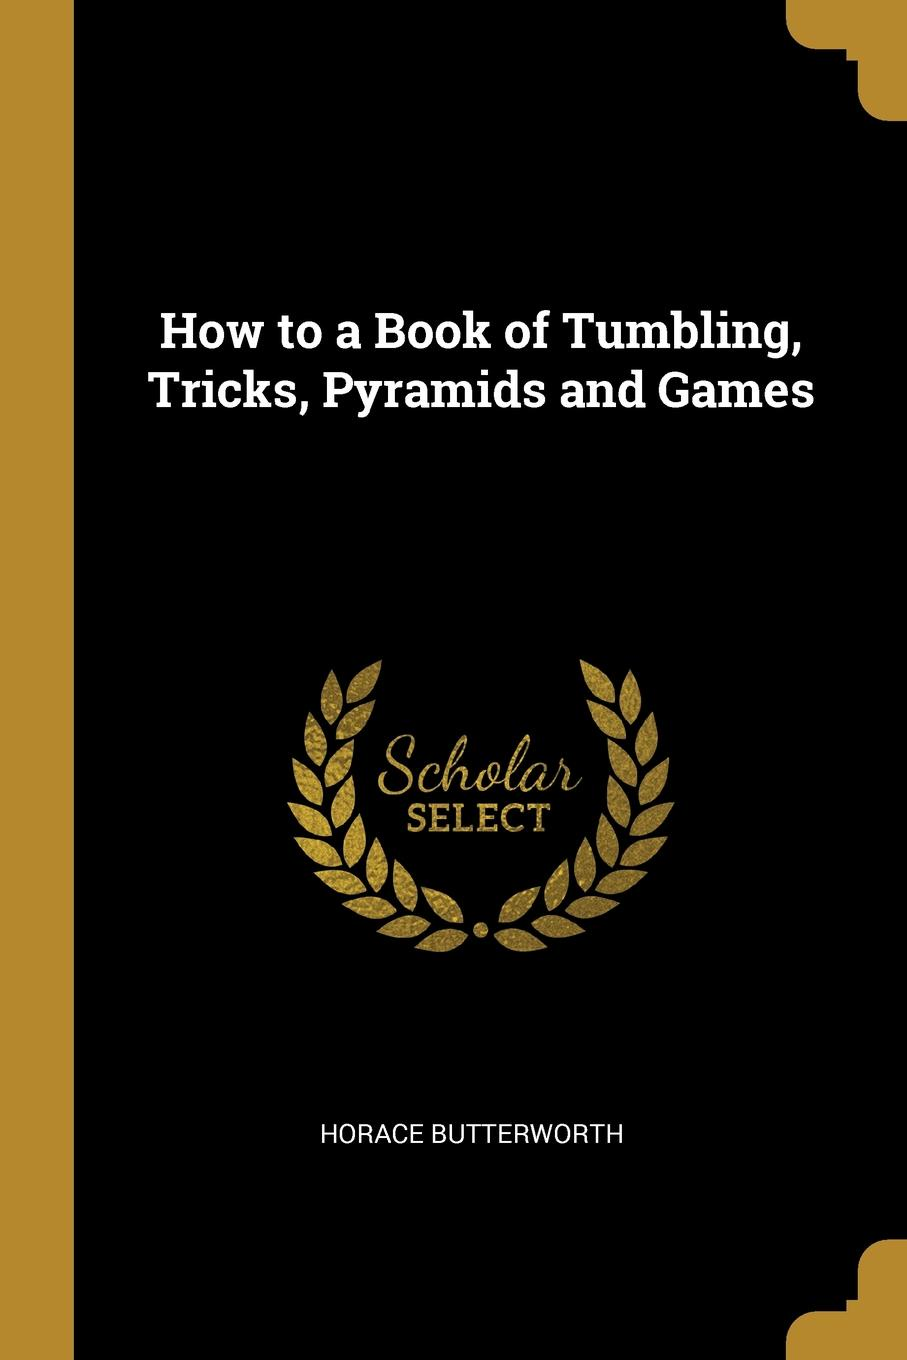 Horace Butterworth. How to a Book of Tumbling, Tricks, Pyramids and Games